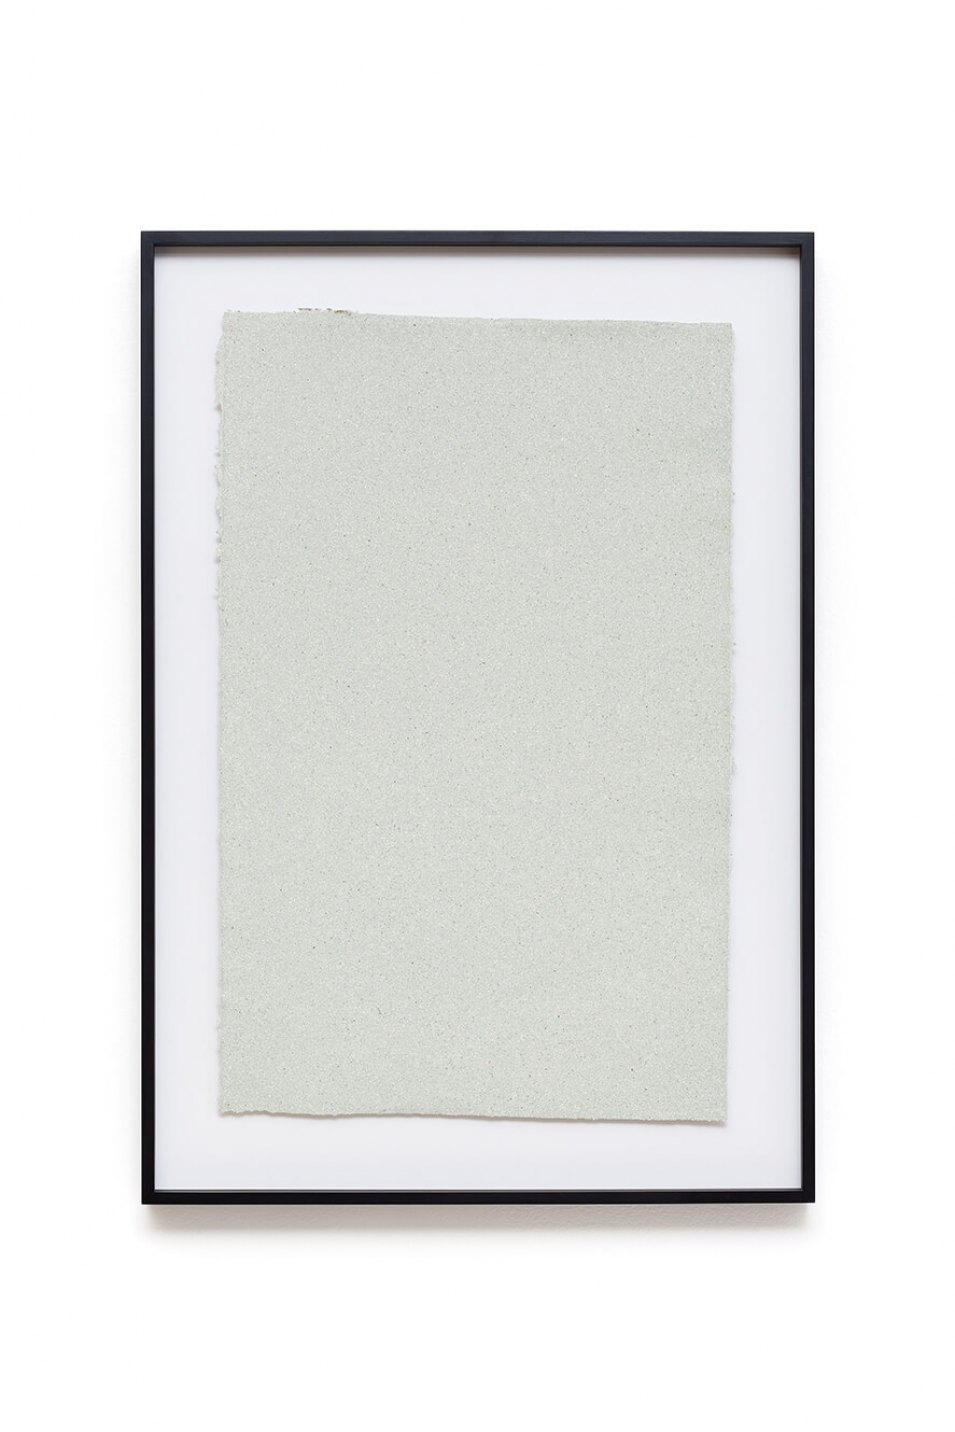 Christodoulos Panayiotou, <em>Pulp</em>, 2014, pulp painting (dollar notes fiber), 85,5 × 59 cm - Mendes Wood DM